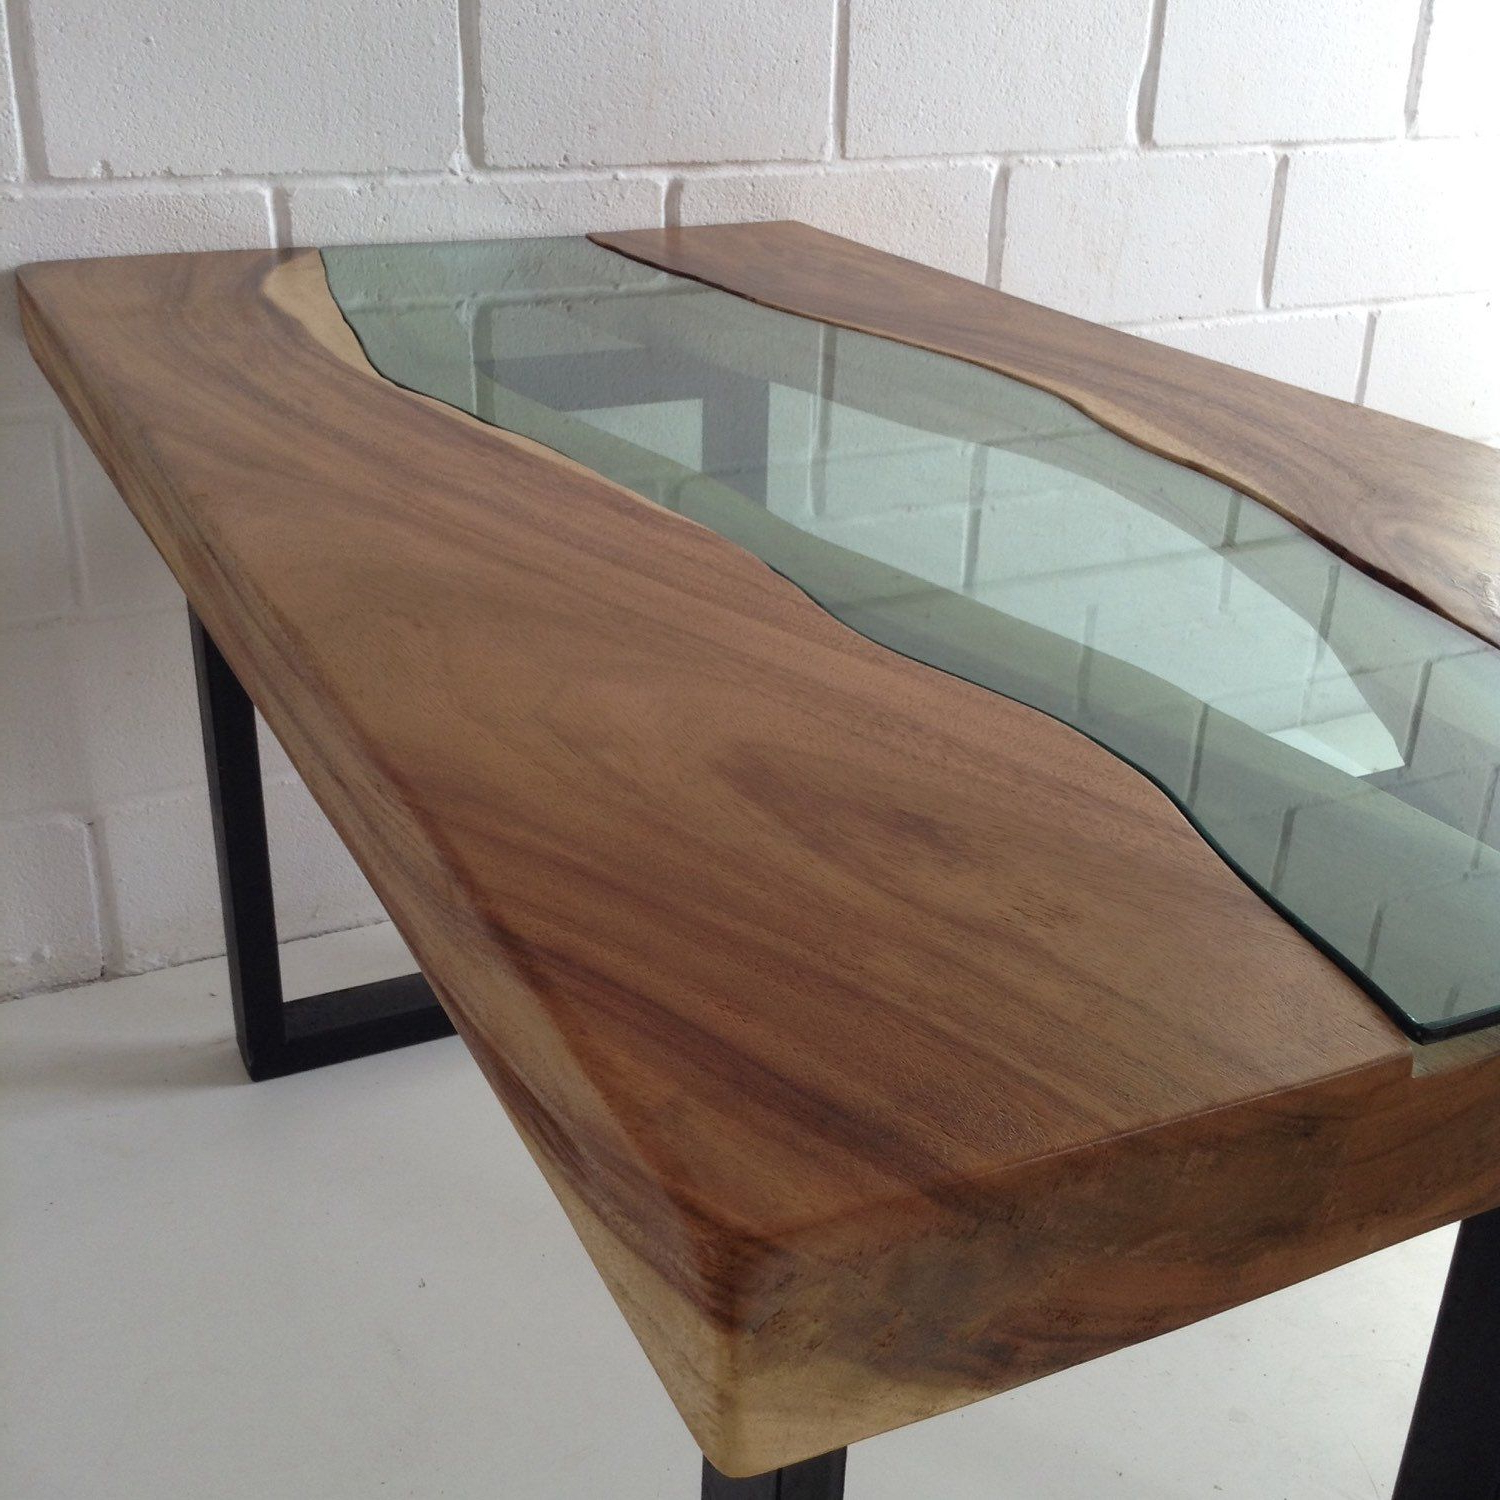 Popular Acacia Wood Top Dining Tables With Iron Legs On Raw Metal With Regard To Live Edge Acacia Wood Dining Table With Glass River Centre (View 7 of 30)